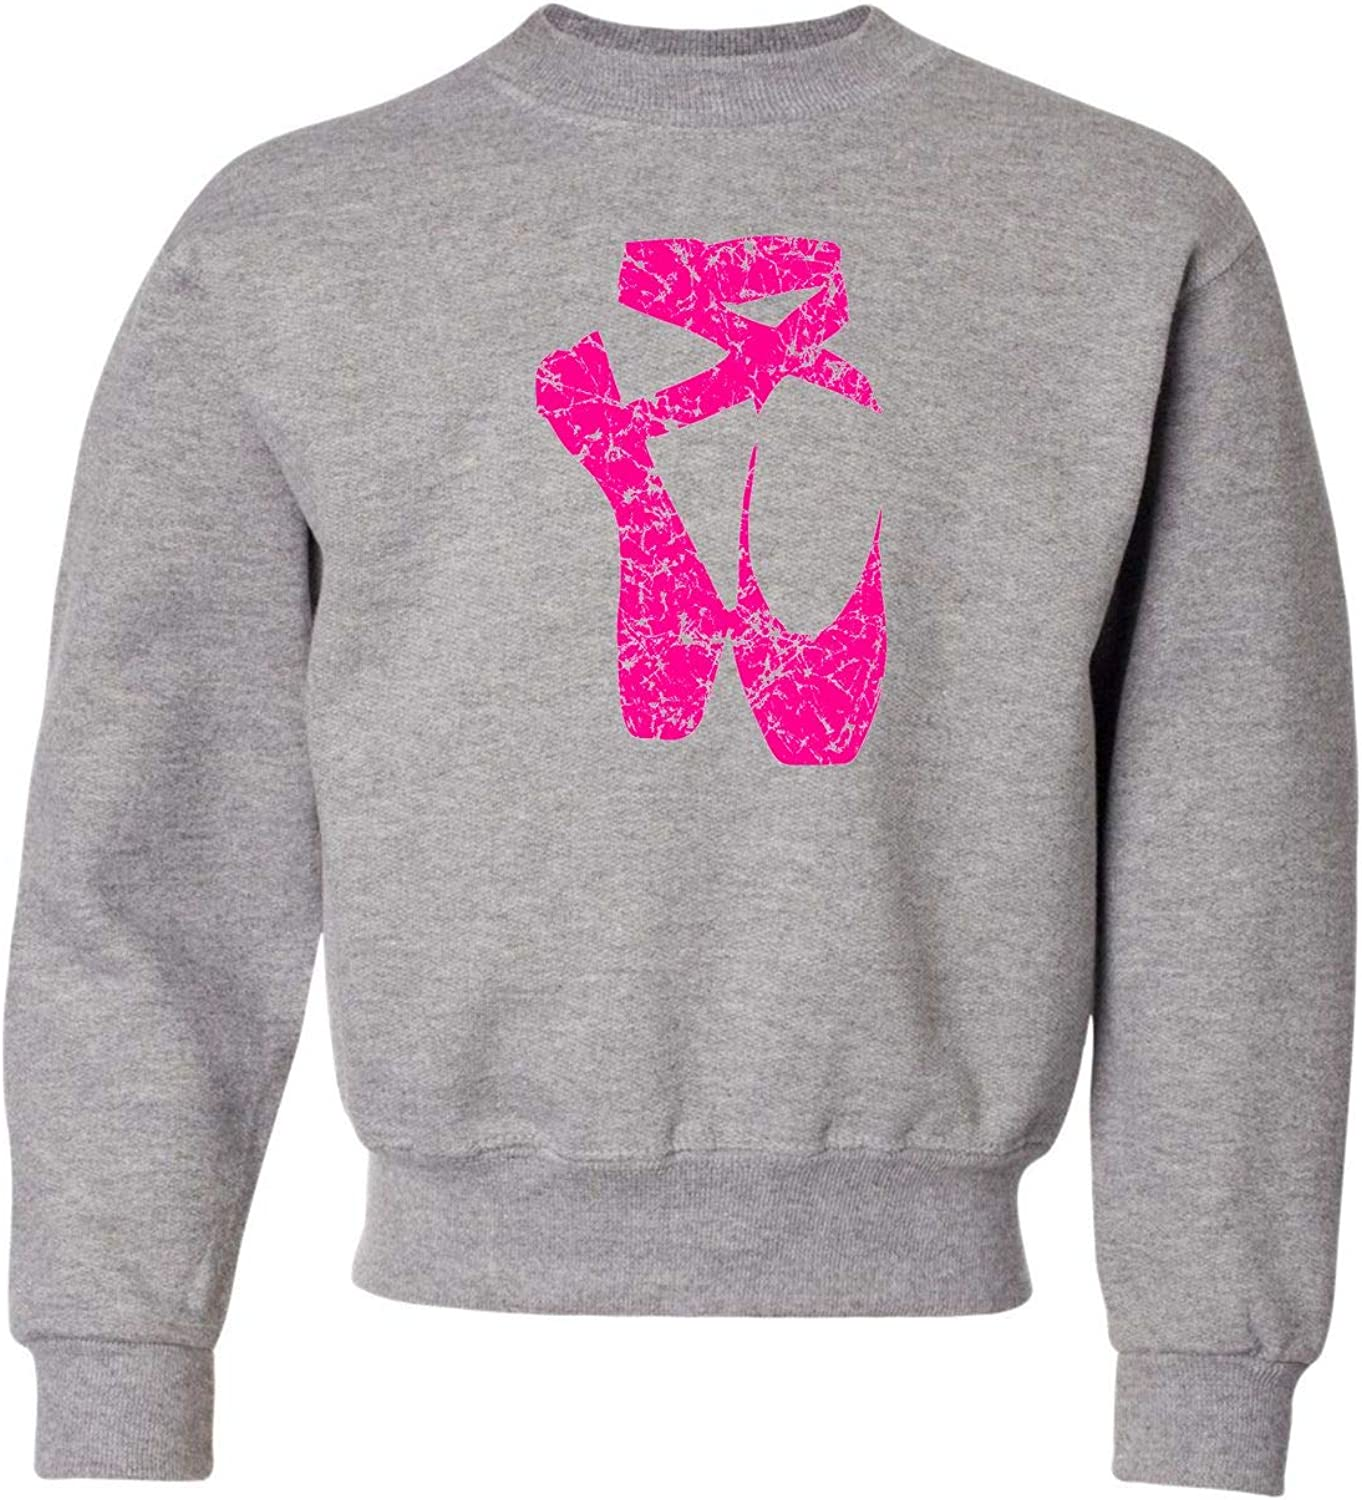 Go All Out Sale price Youth Ballet Distressed Print Crewneck S Shoes Popularity Pointe